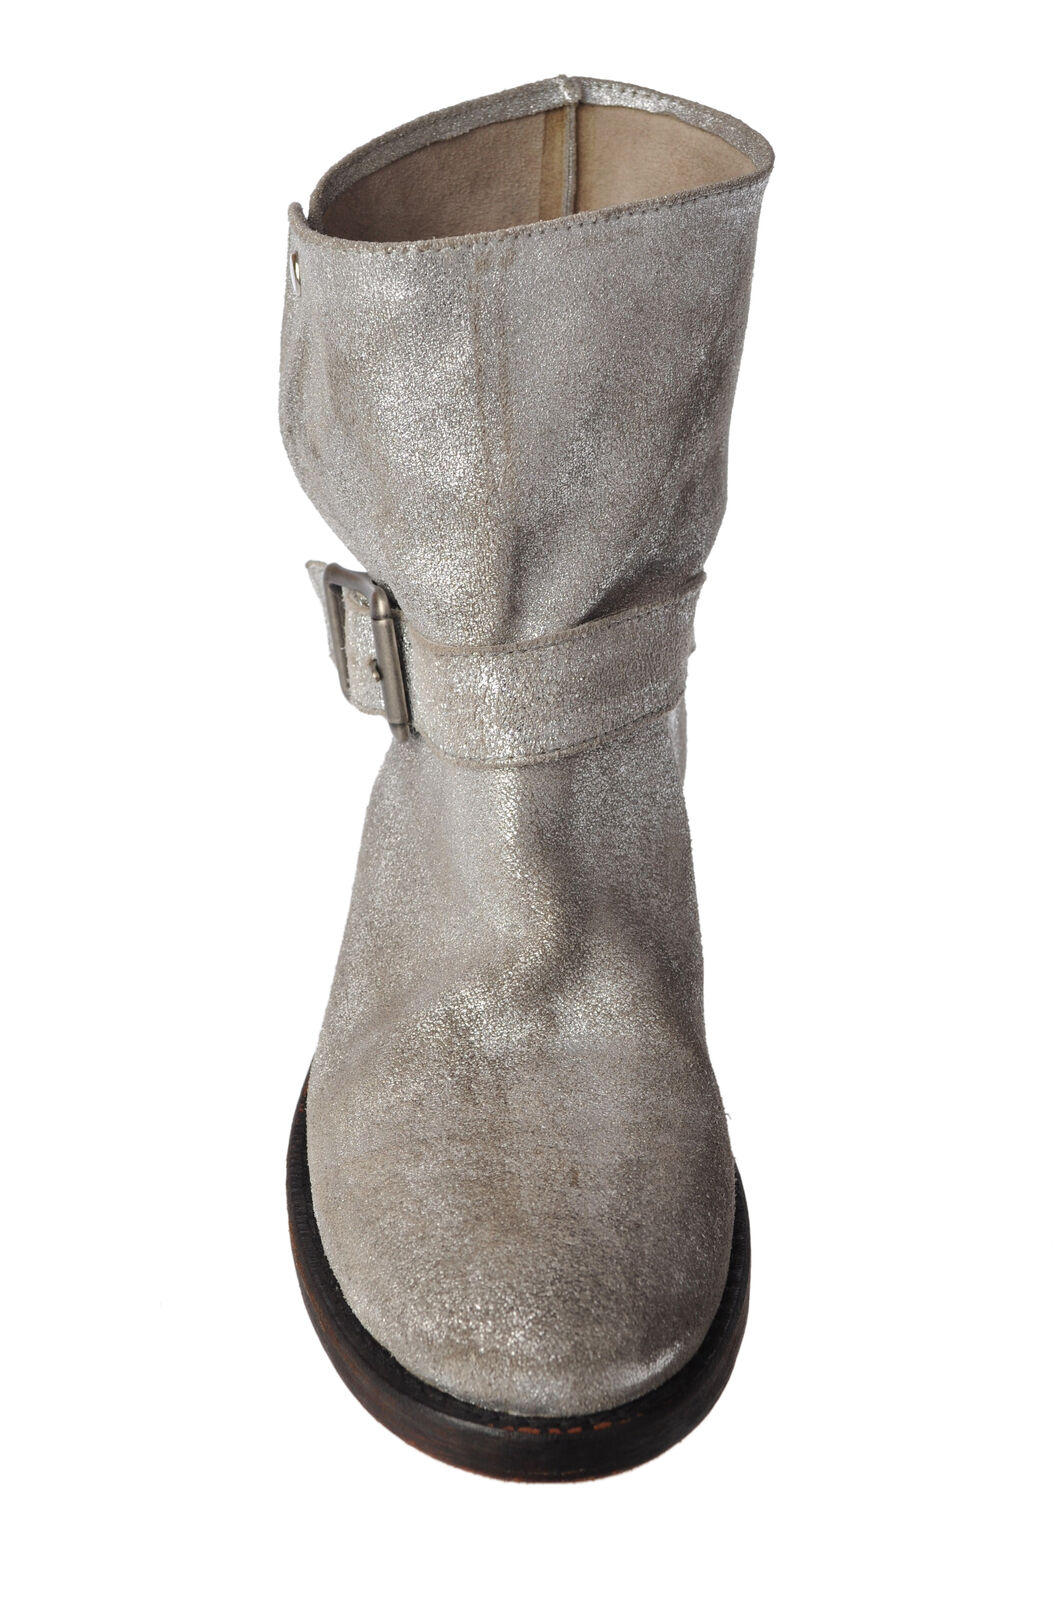 Mr Wolf    -  Ankle bottes - Female - argent - 3299019A185544 f21ec6